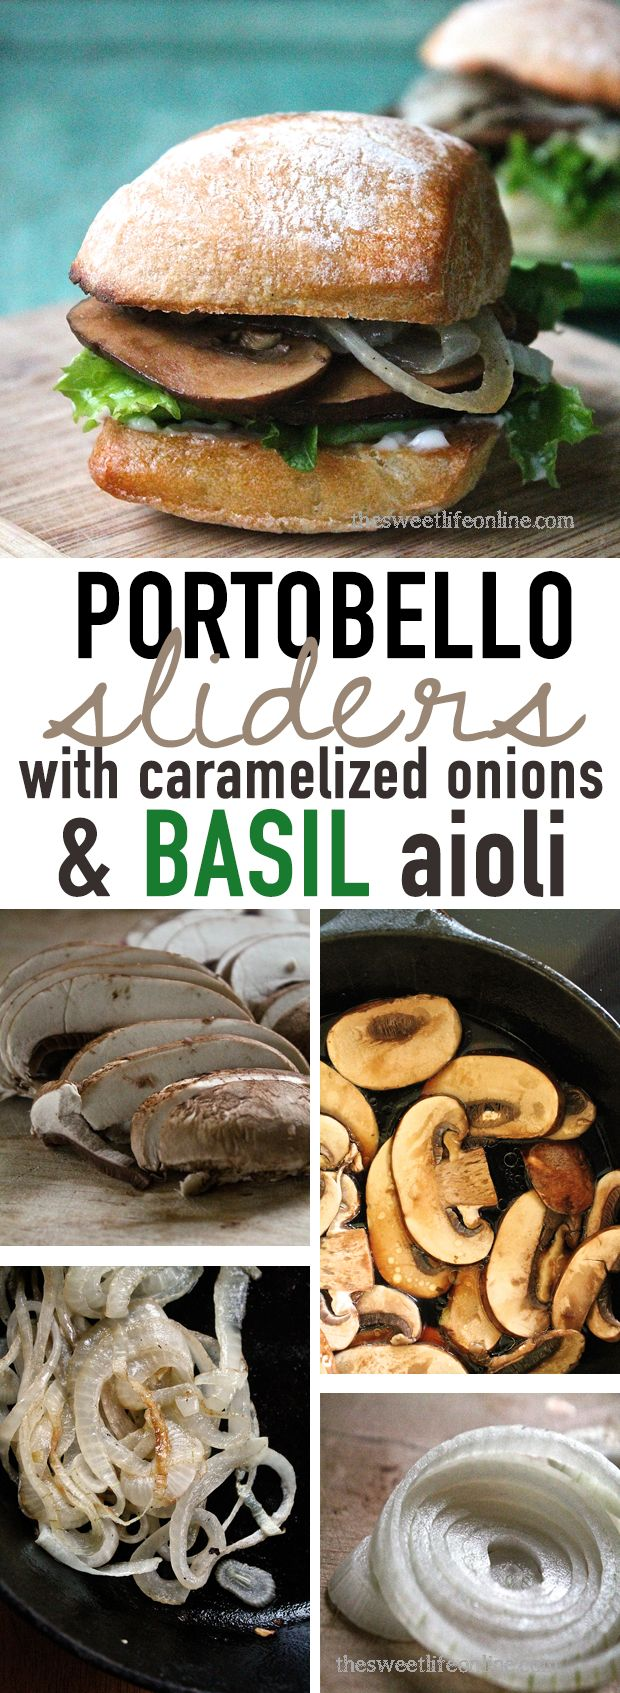 These vegan Portobello Sliders with Basil Aioli are so incredibly good, even your vegan-skeptic friends will be impressed. Click the photo for the full recipe.